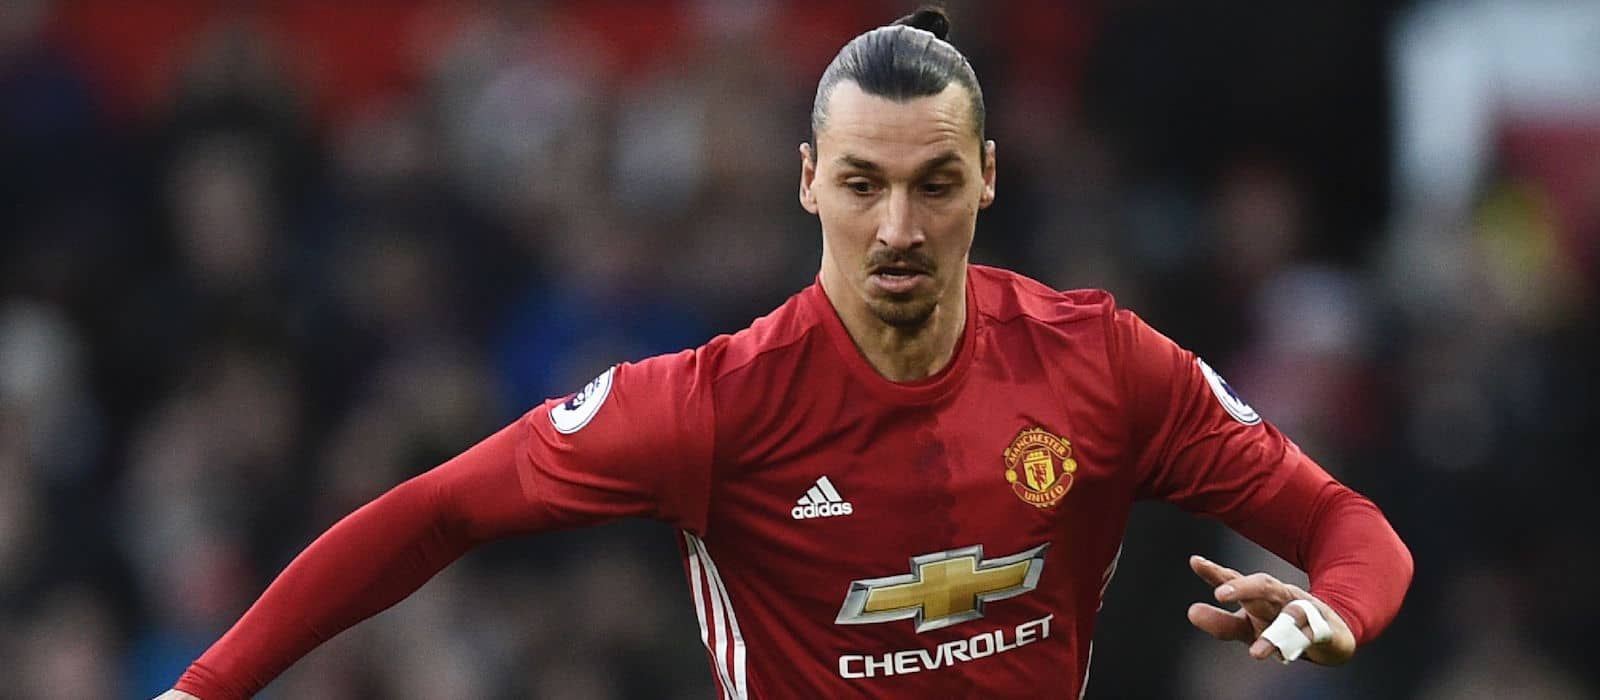 Zlatan Ibrahimovic's agent reveals potential next location from Manchester United